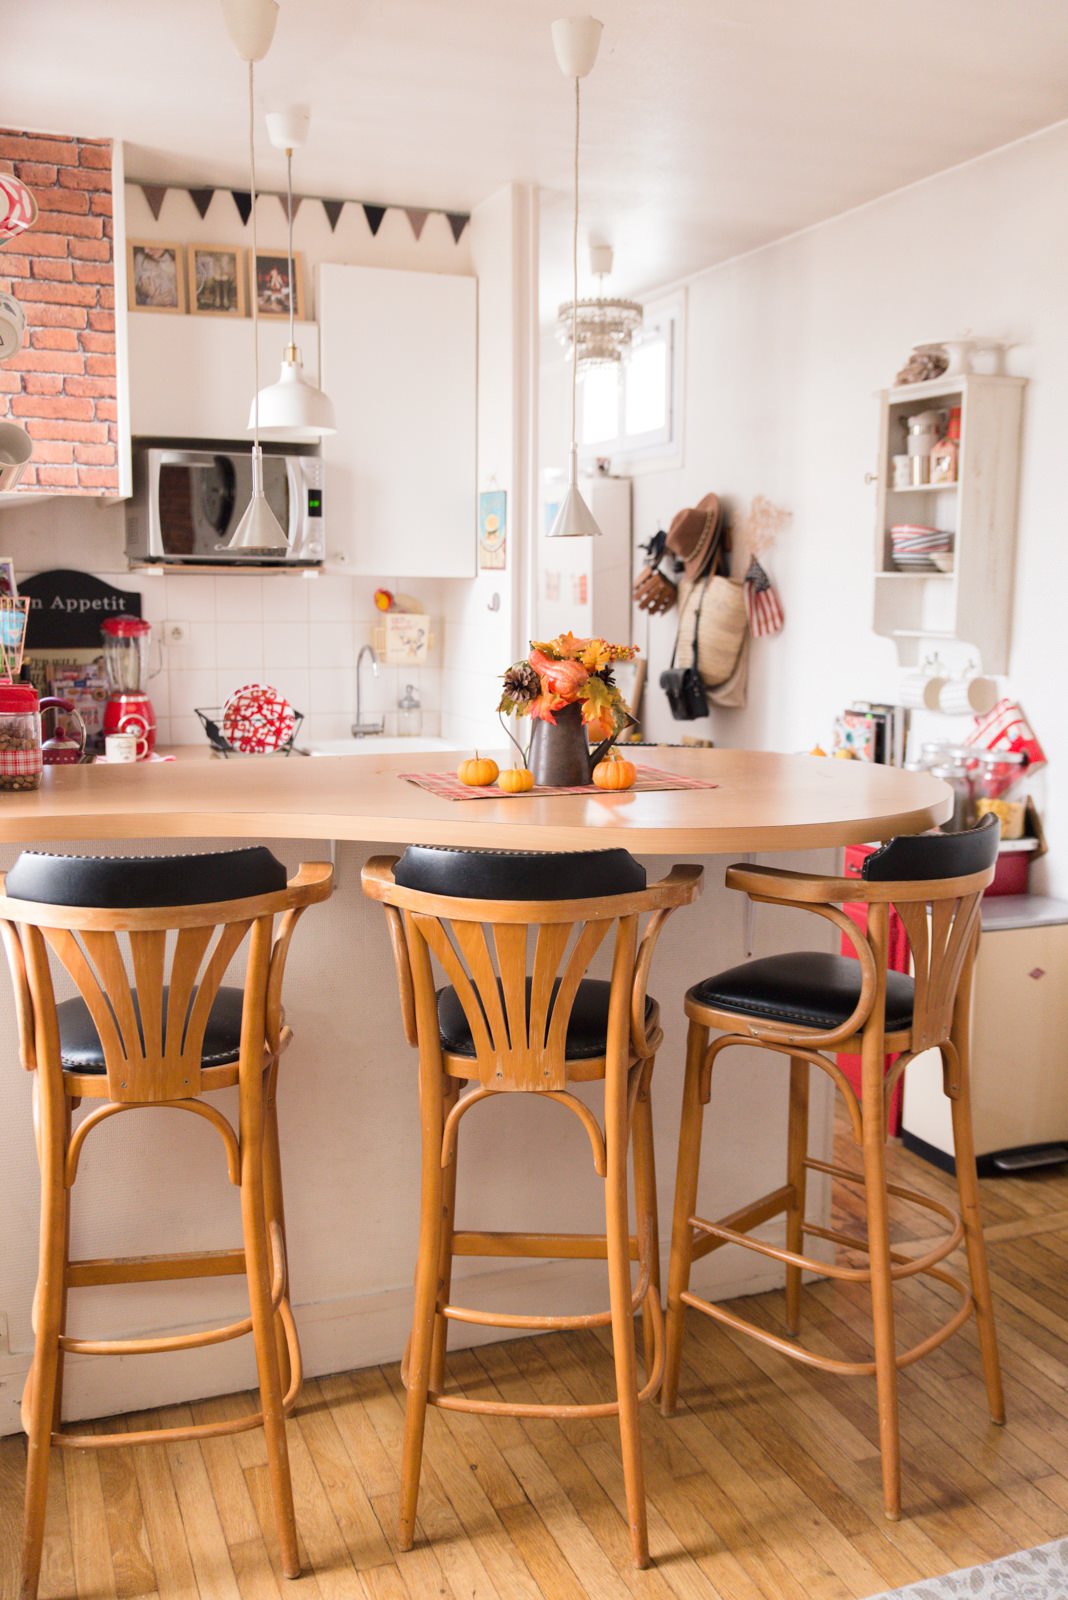 Blog-mode-And-The-City-Lifestyle-Deco-Appartement-Parisien-Mode-And-The-City